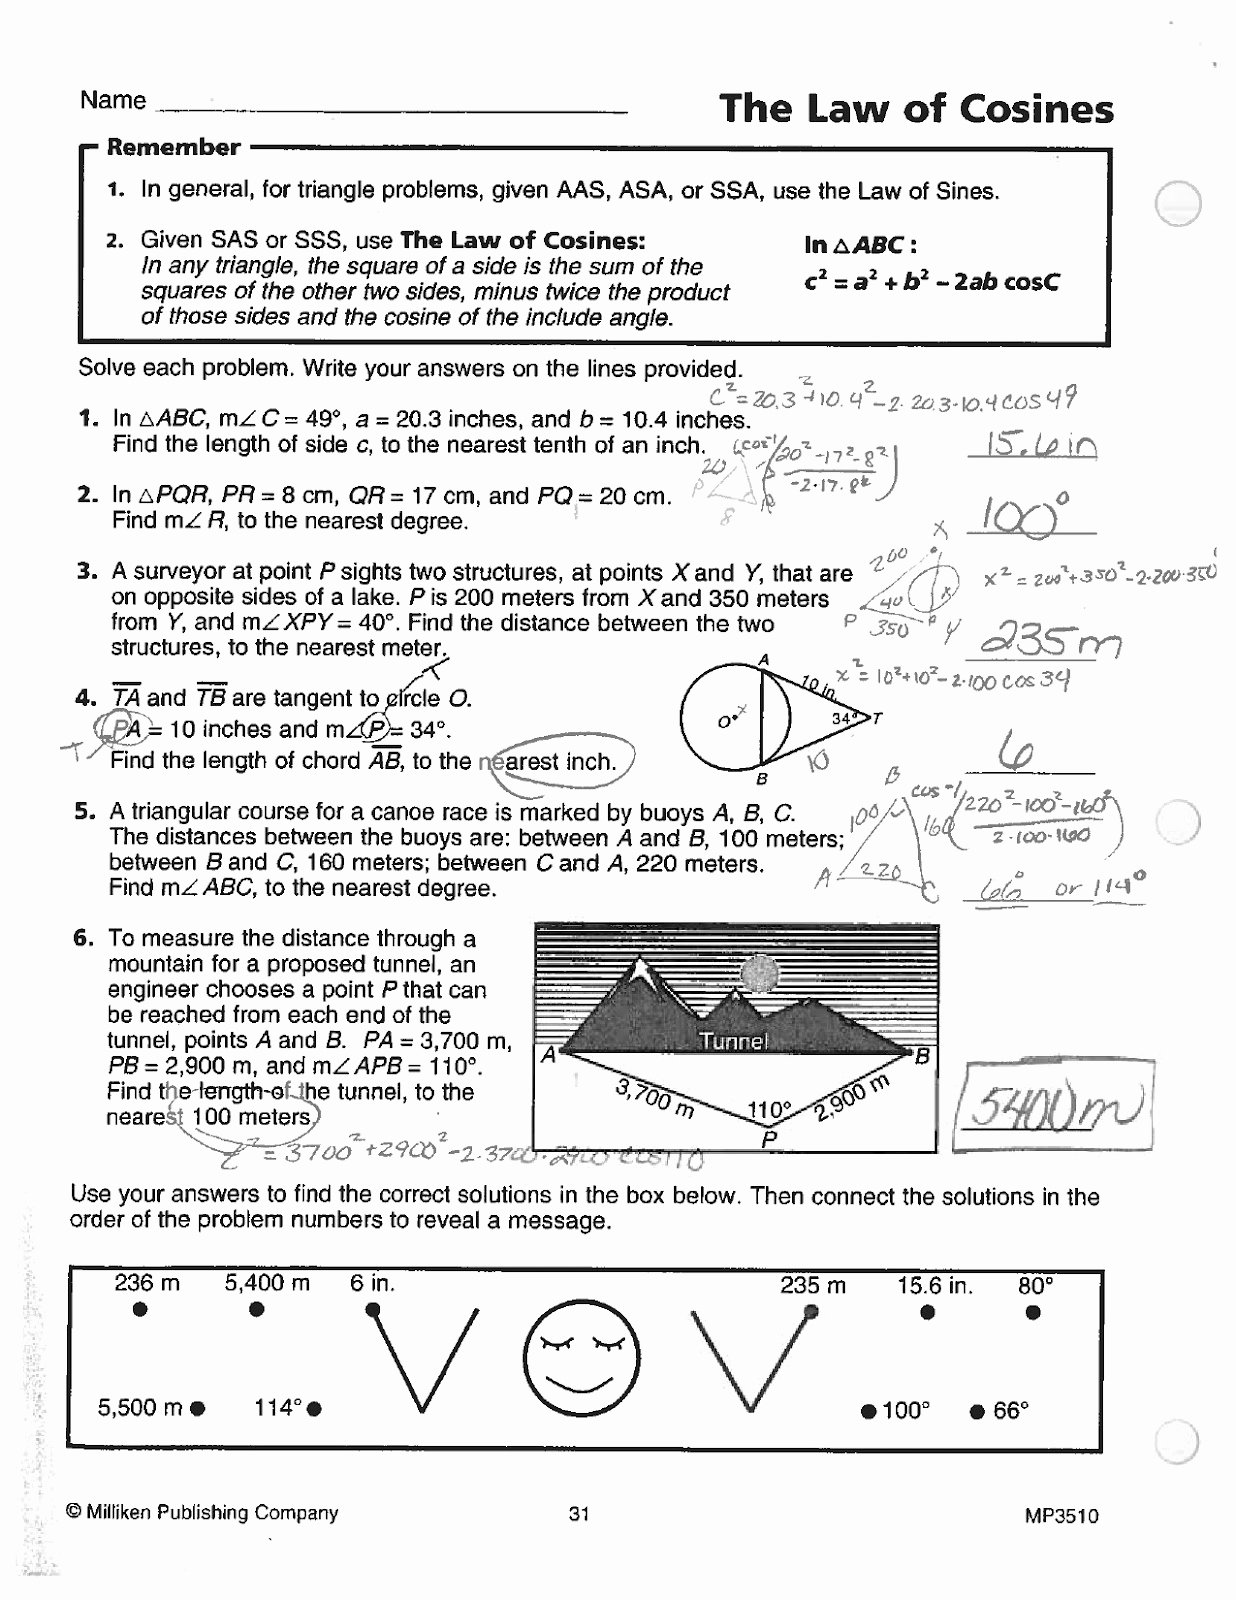 Law Of Sines Worksheet Luxury Law Sines Cosines Worksheet